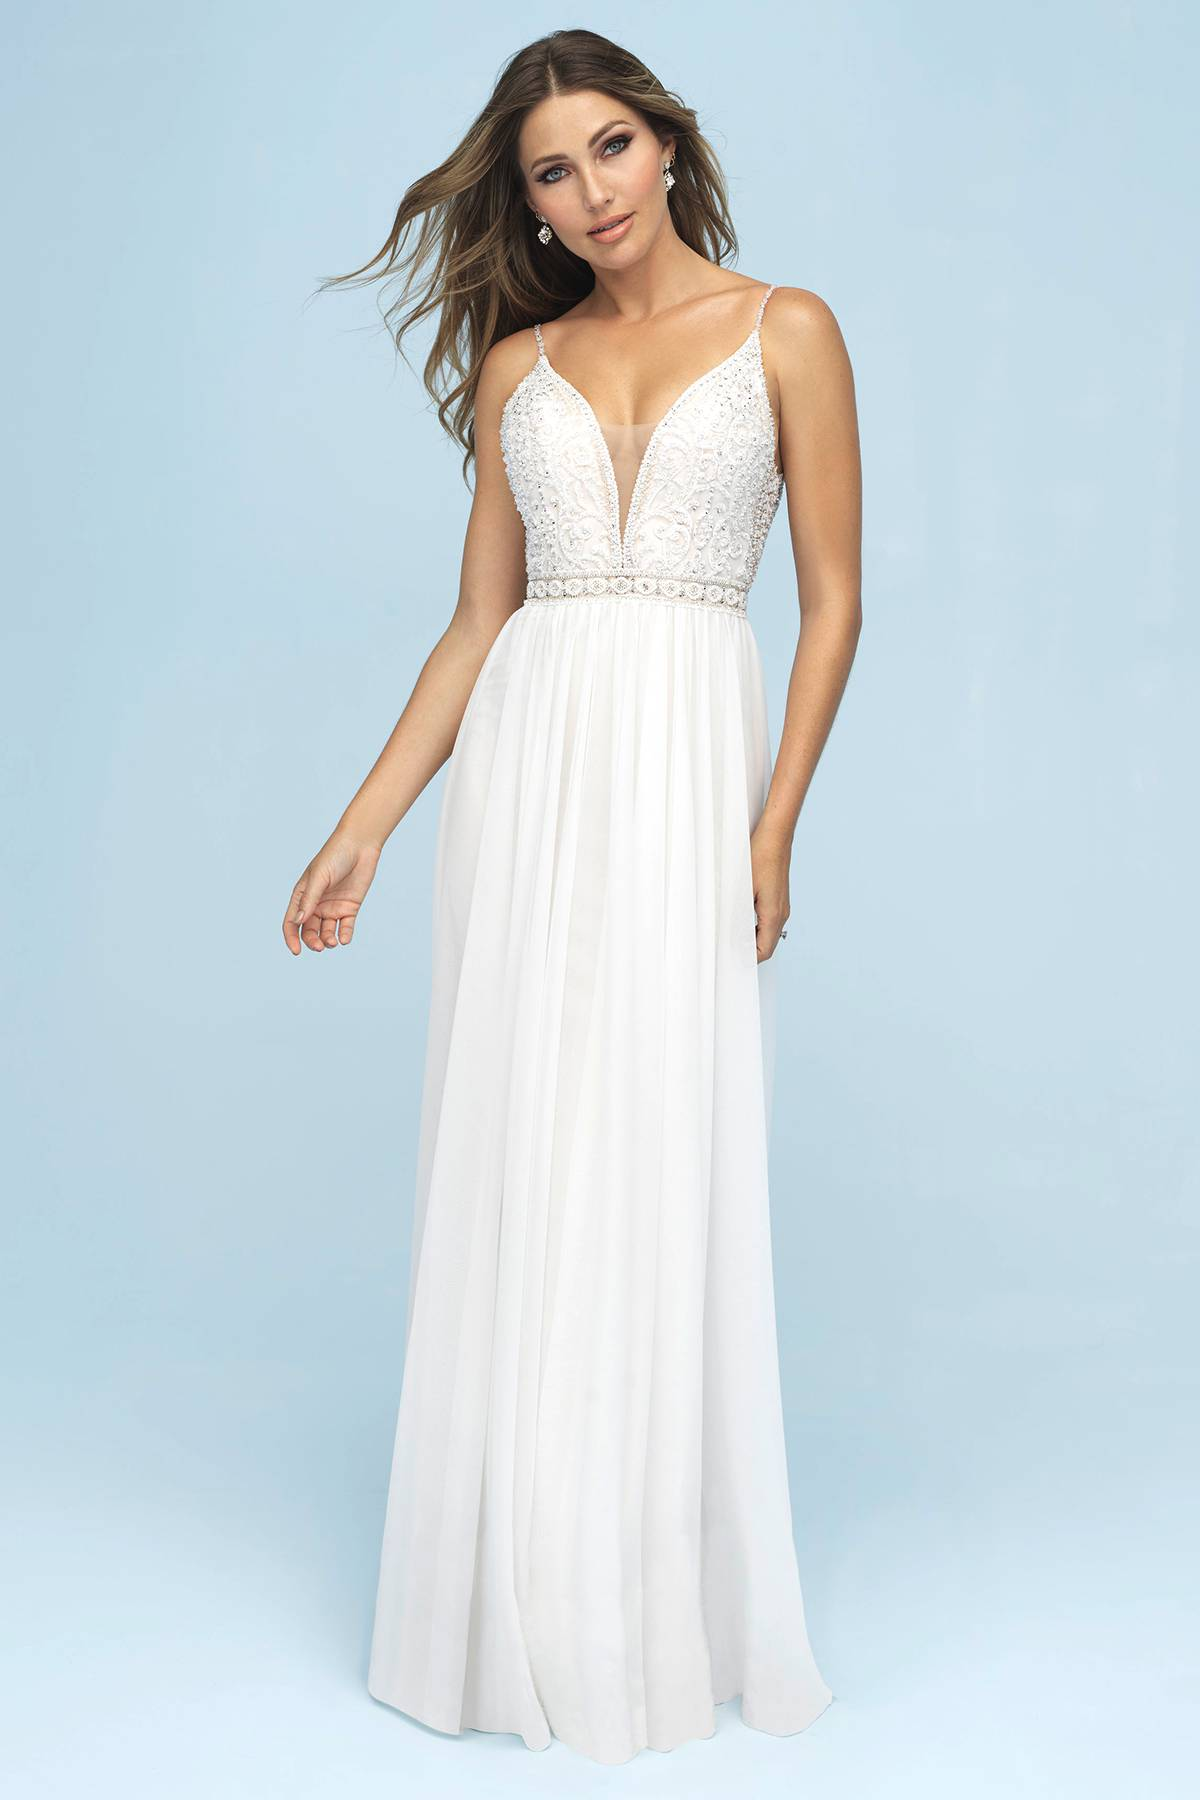 1b30247c0bb0f Style 9622 by Allure Bridals - Find Your Dream Dress